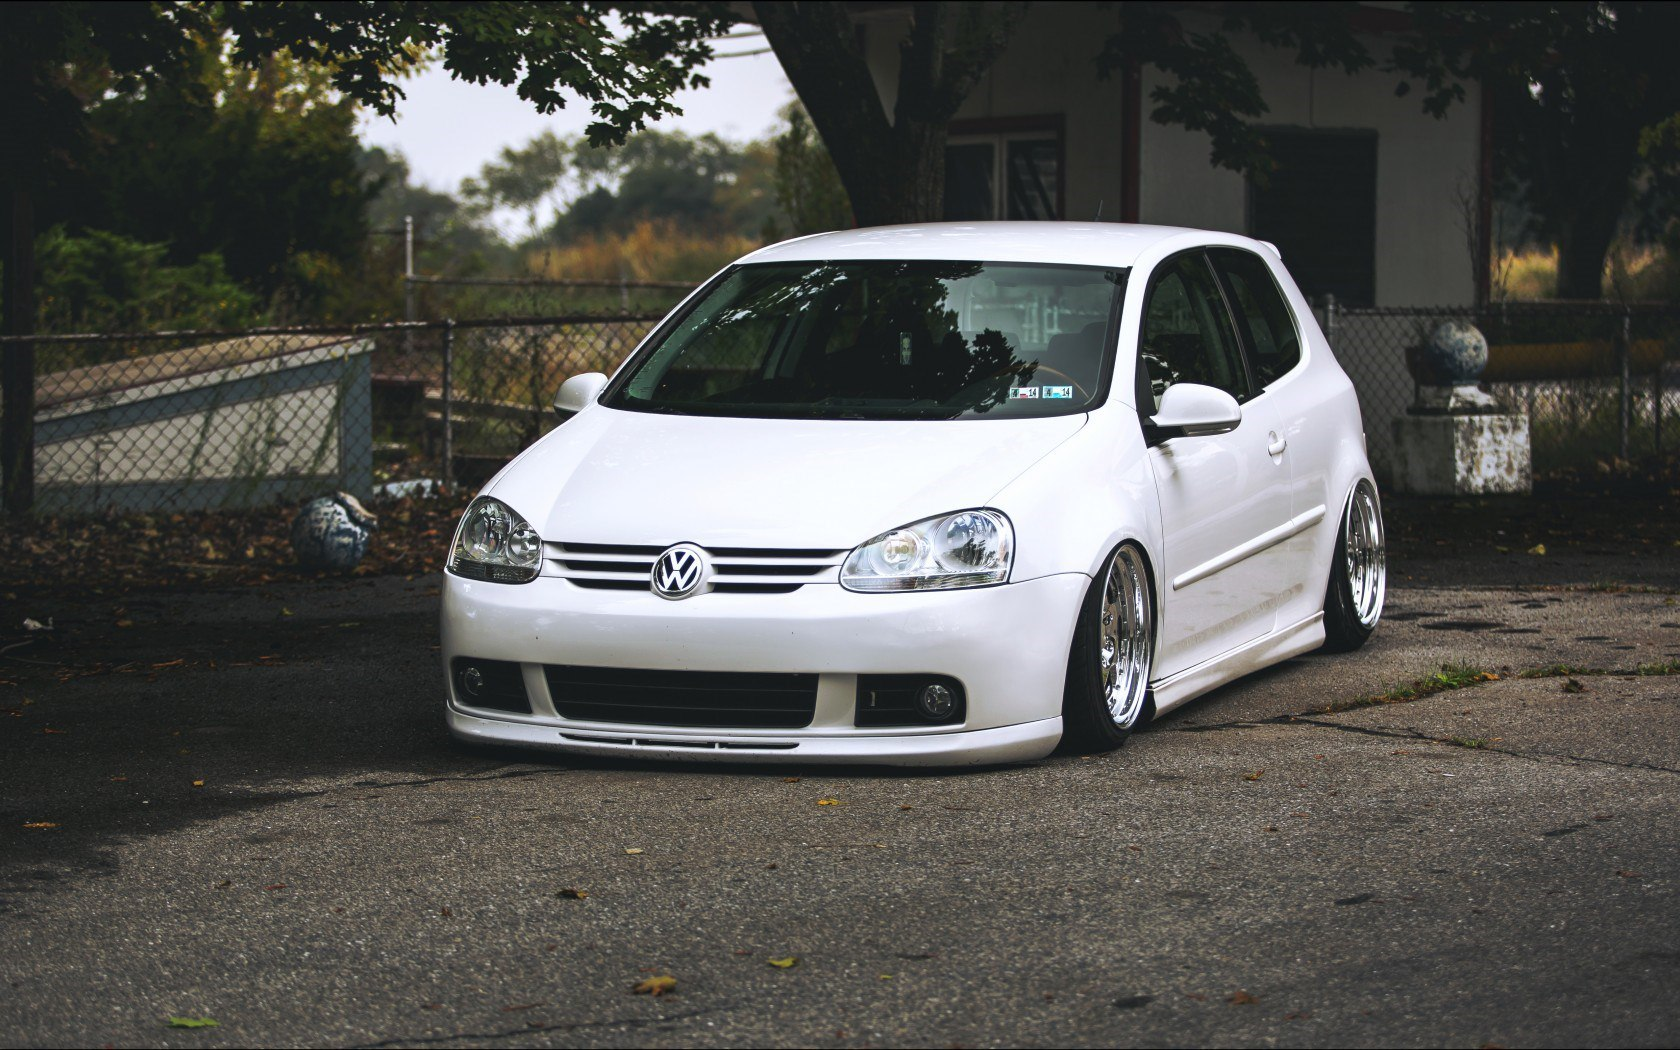 Volkswagen golf iv pics and photos